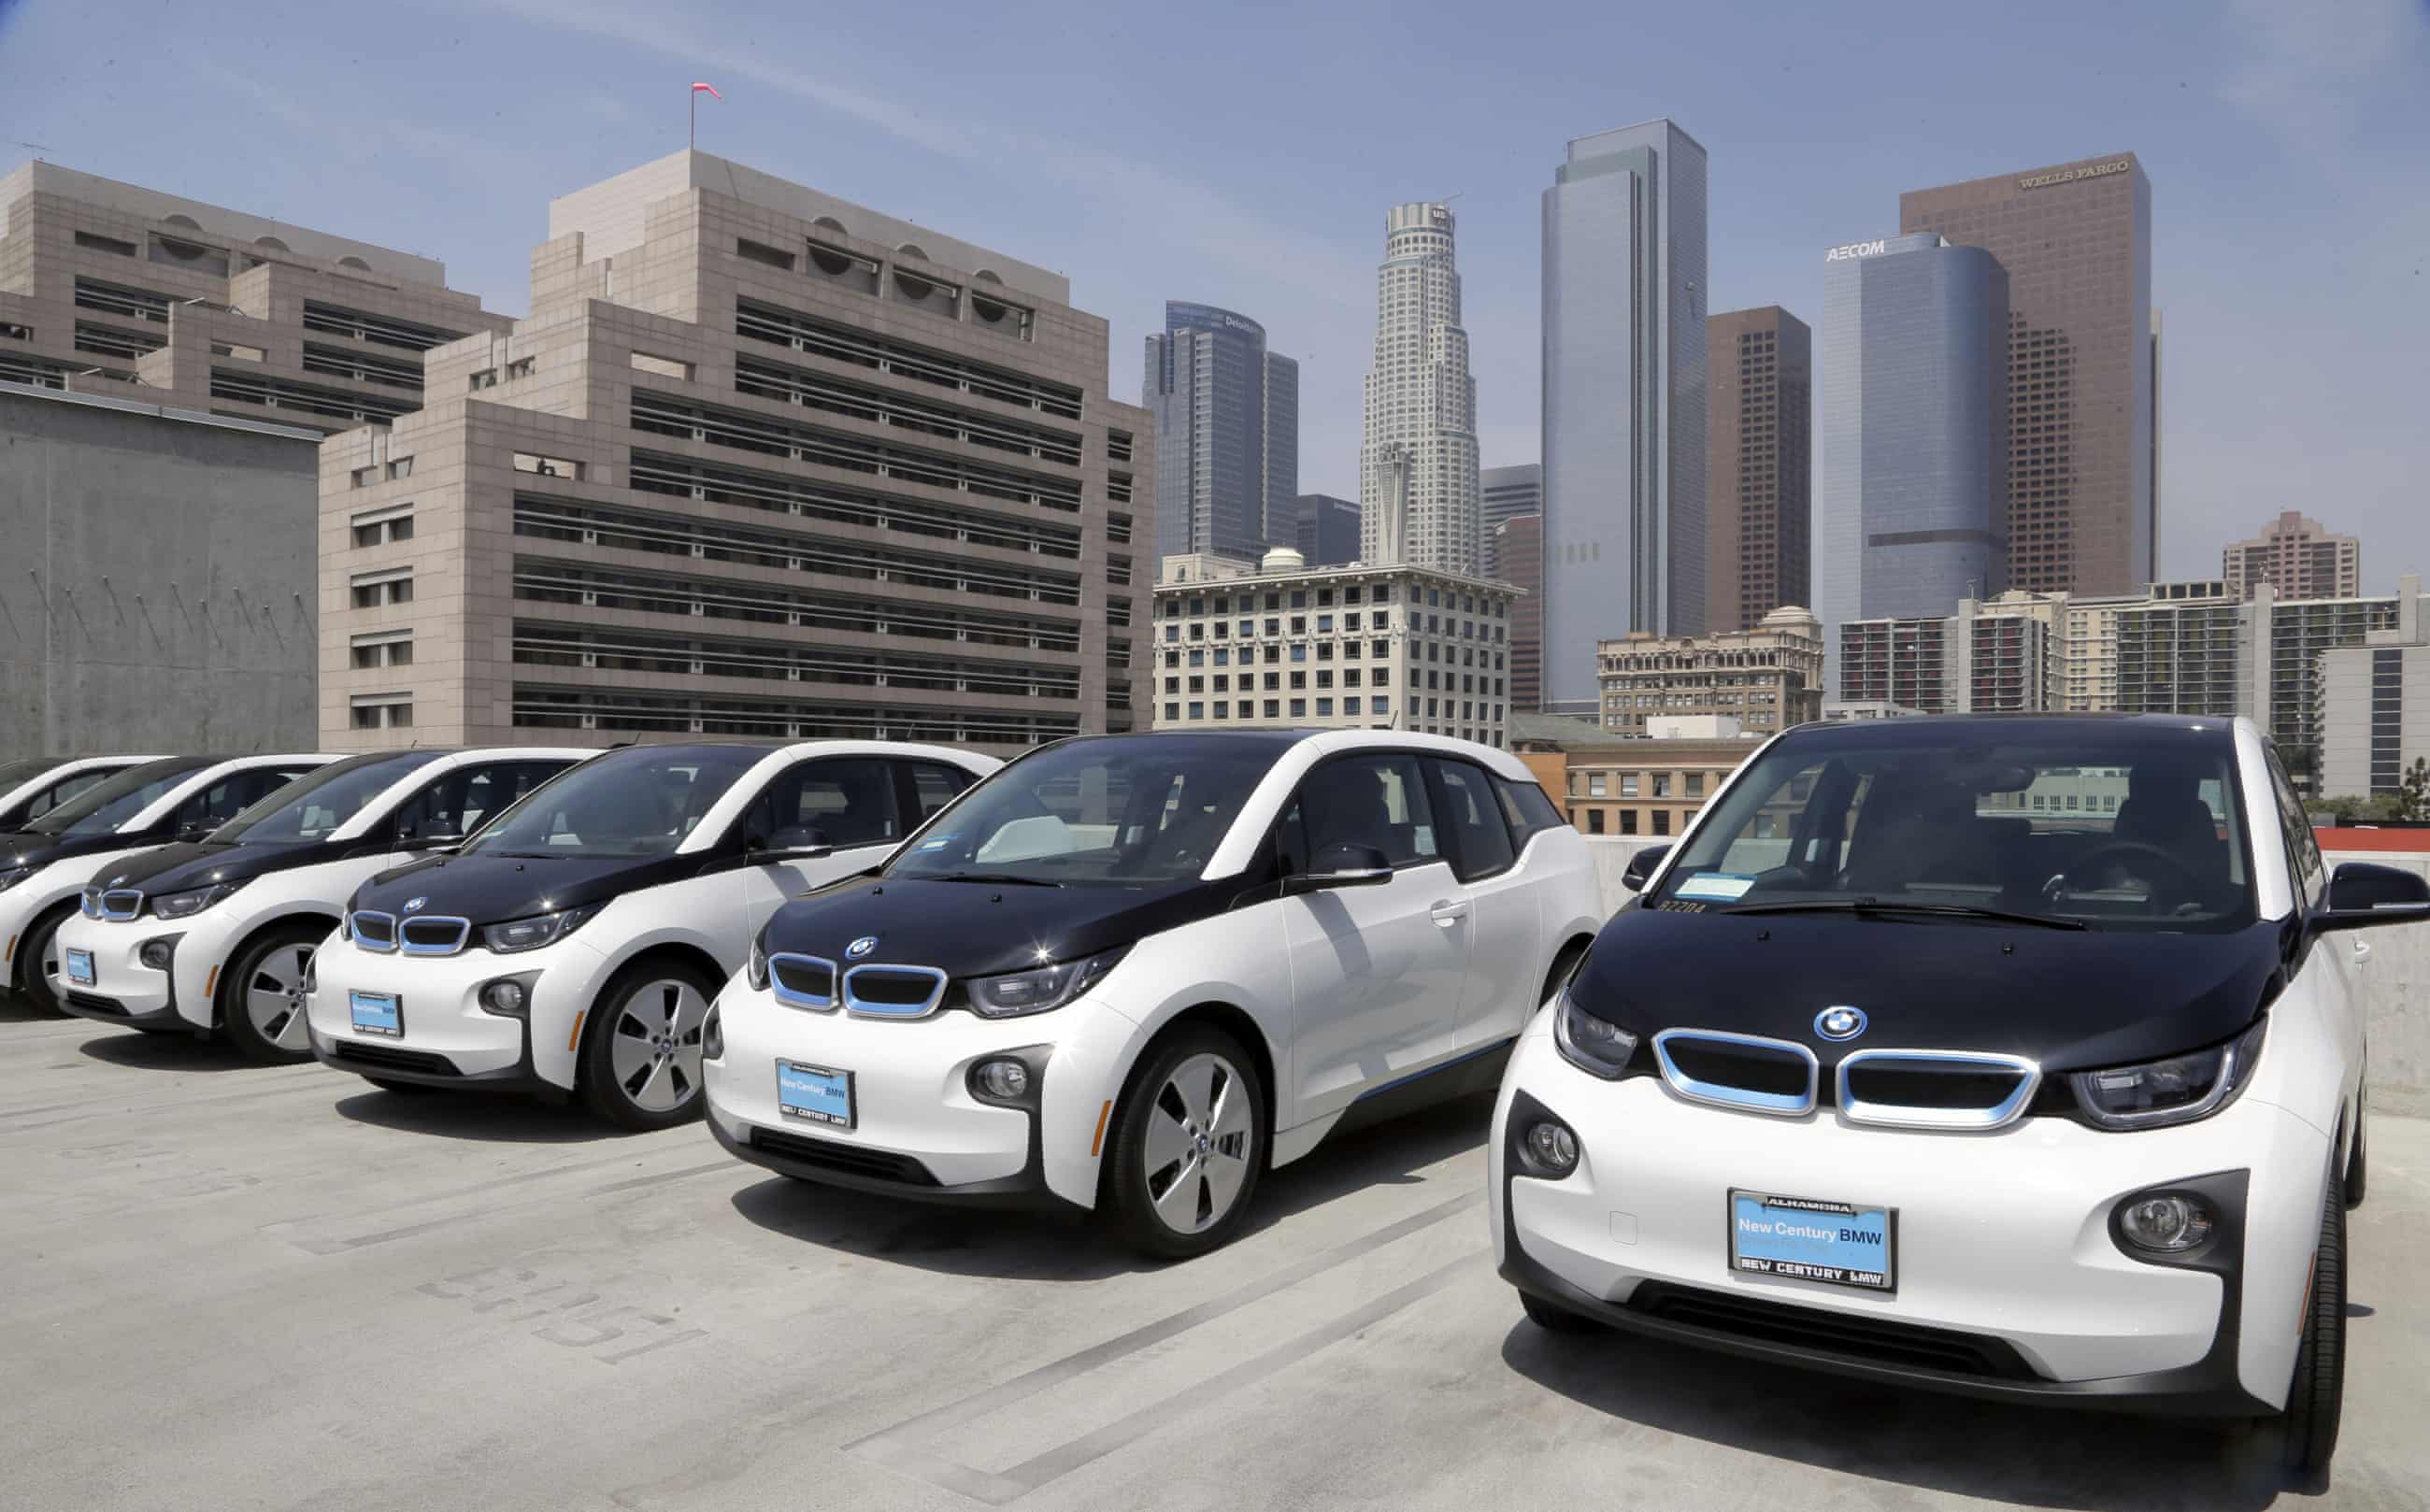 Should I buy an electric car? All you need to know about prices, technology and range